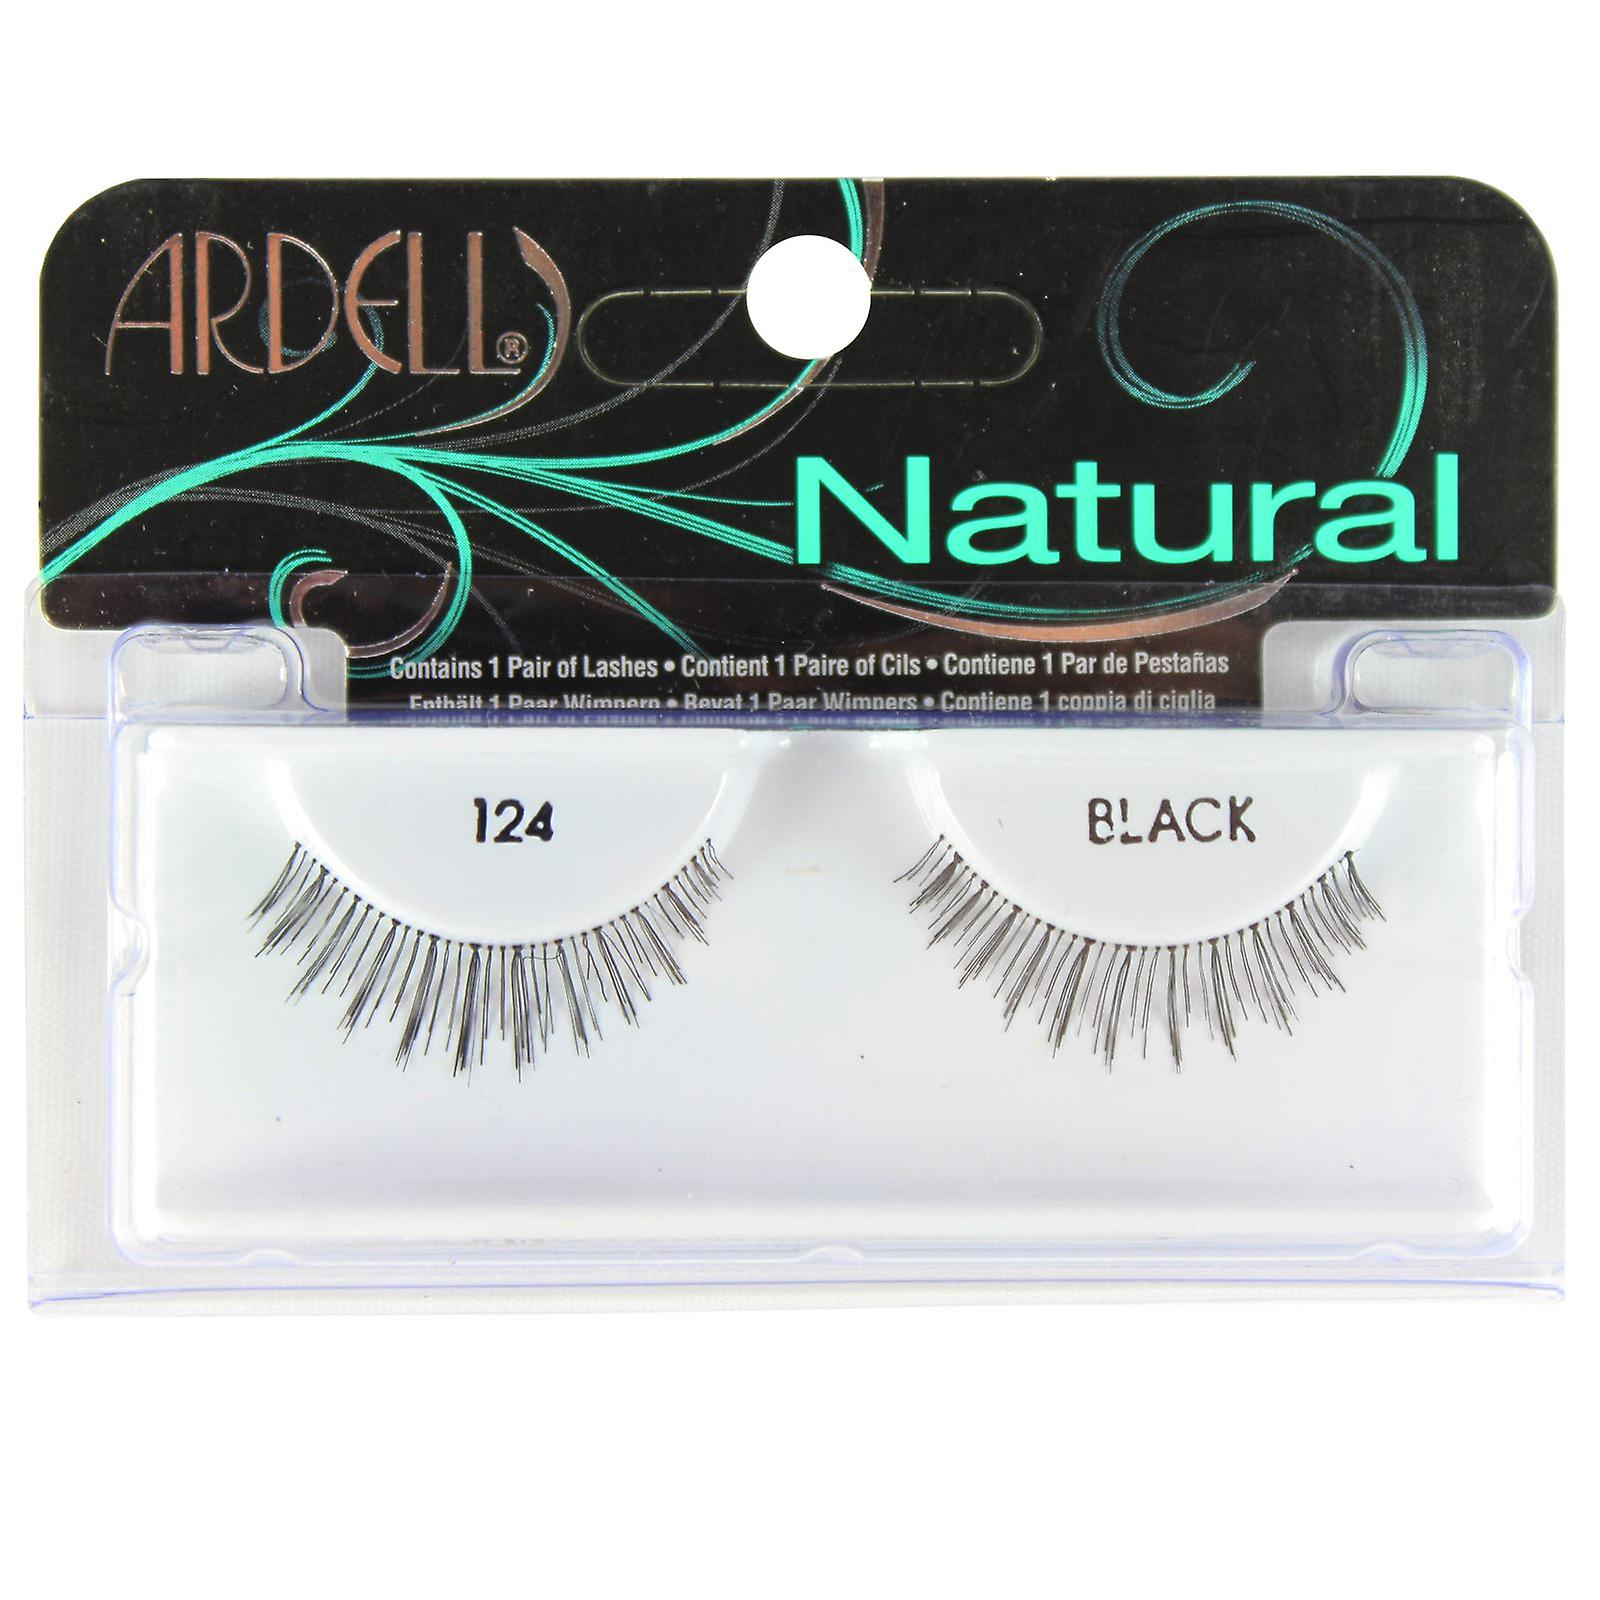 Natural Ardell Black False Eyelashes No124 7fgIyvY6mb